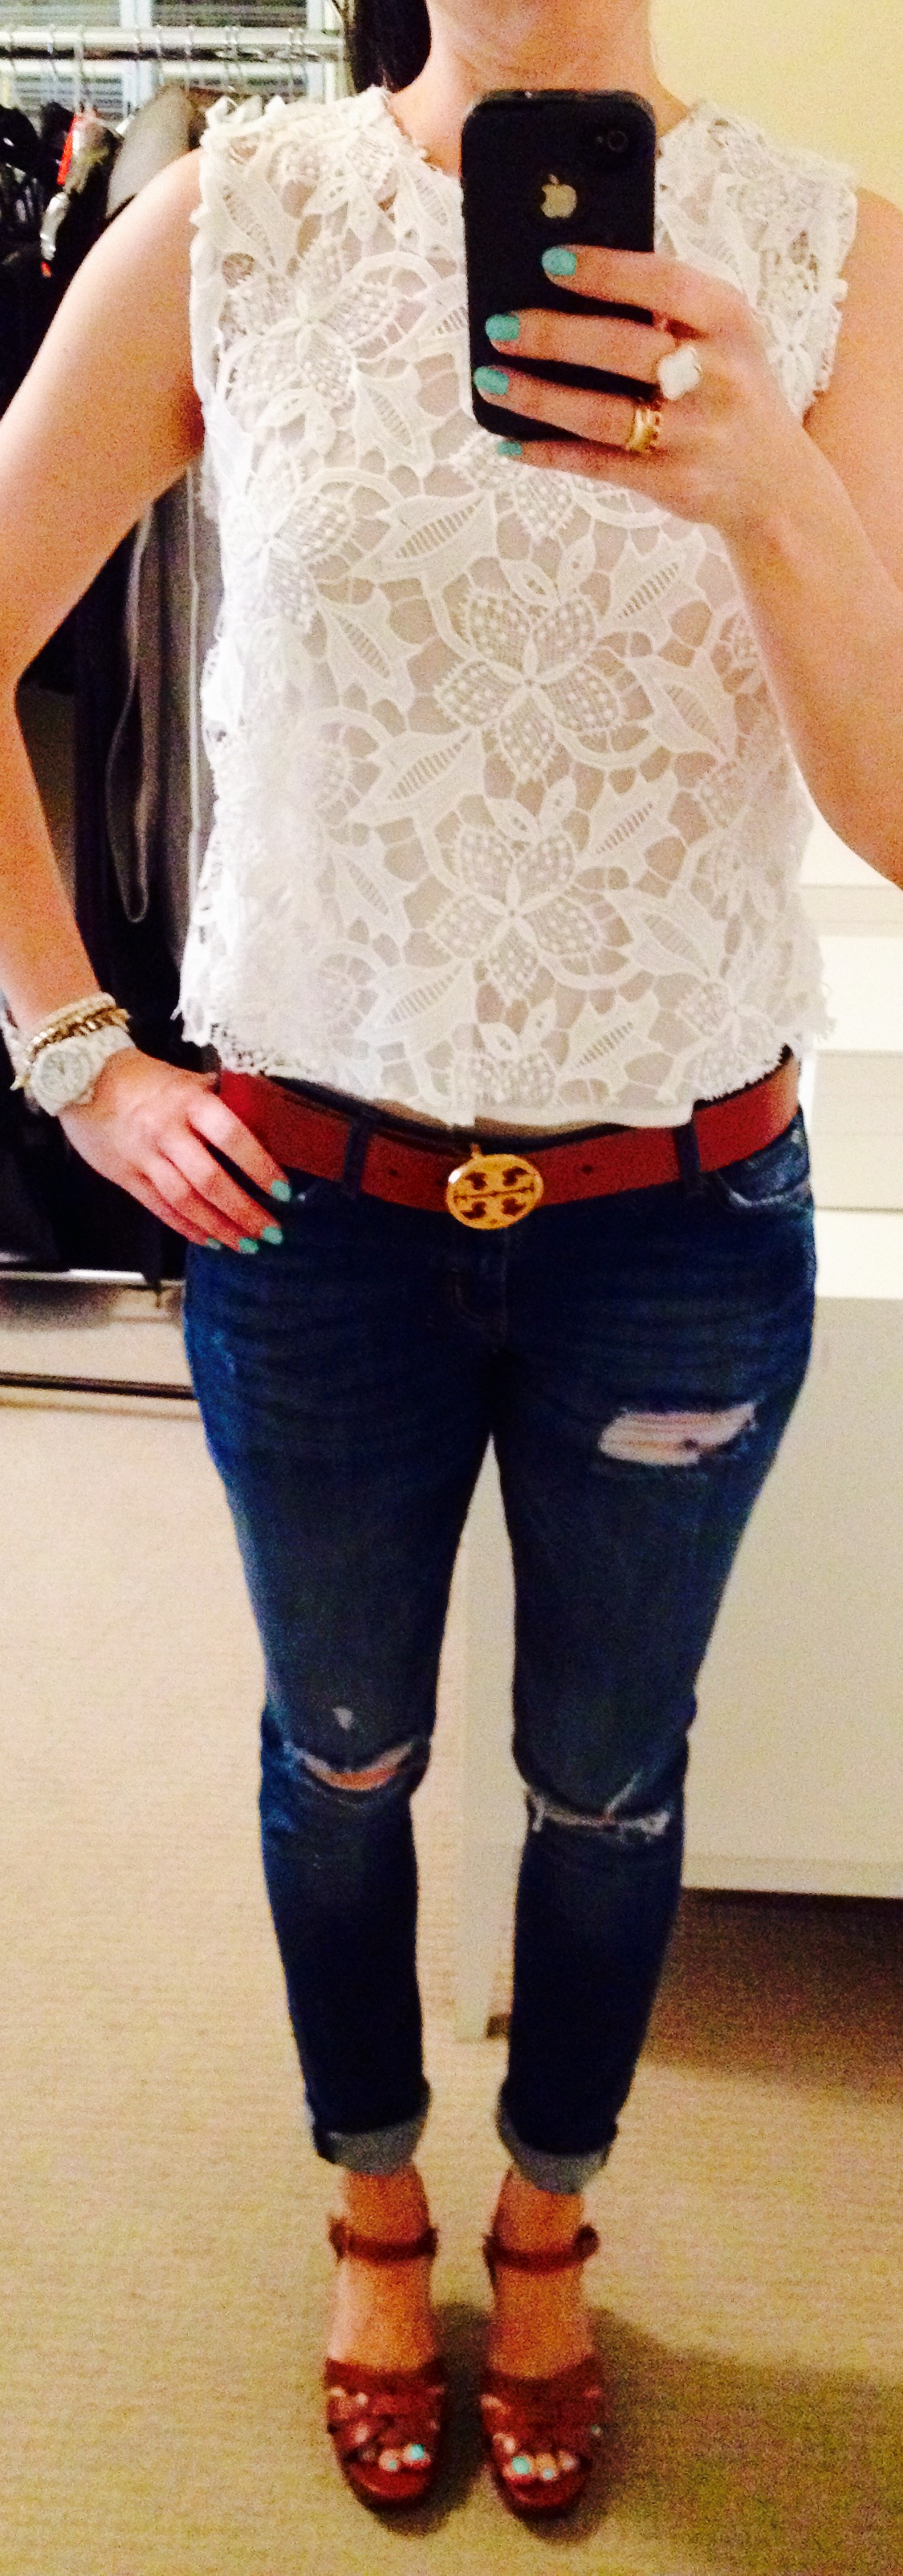 July 31, Lace Top with Tory Burch Belt and distressed denim